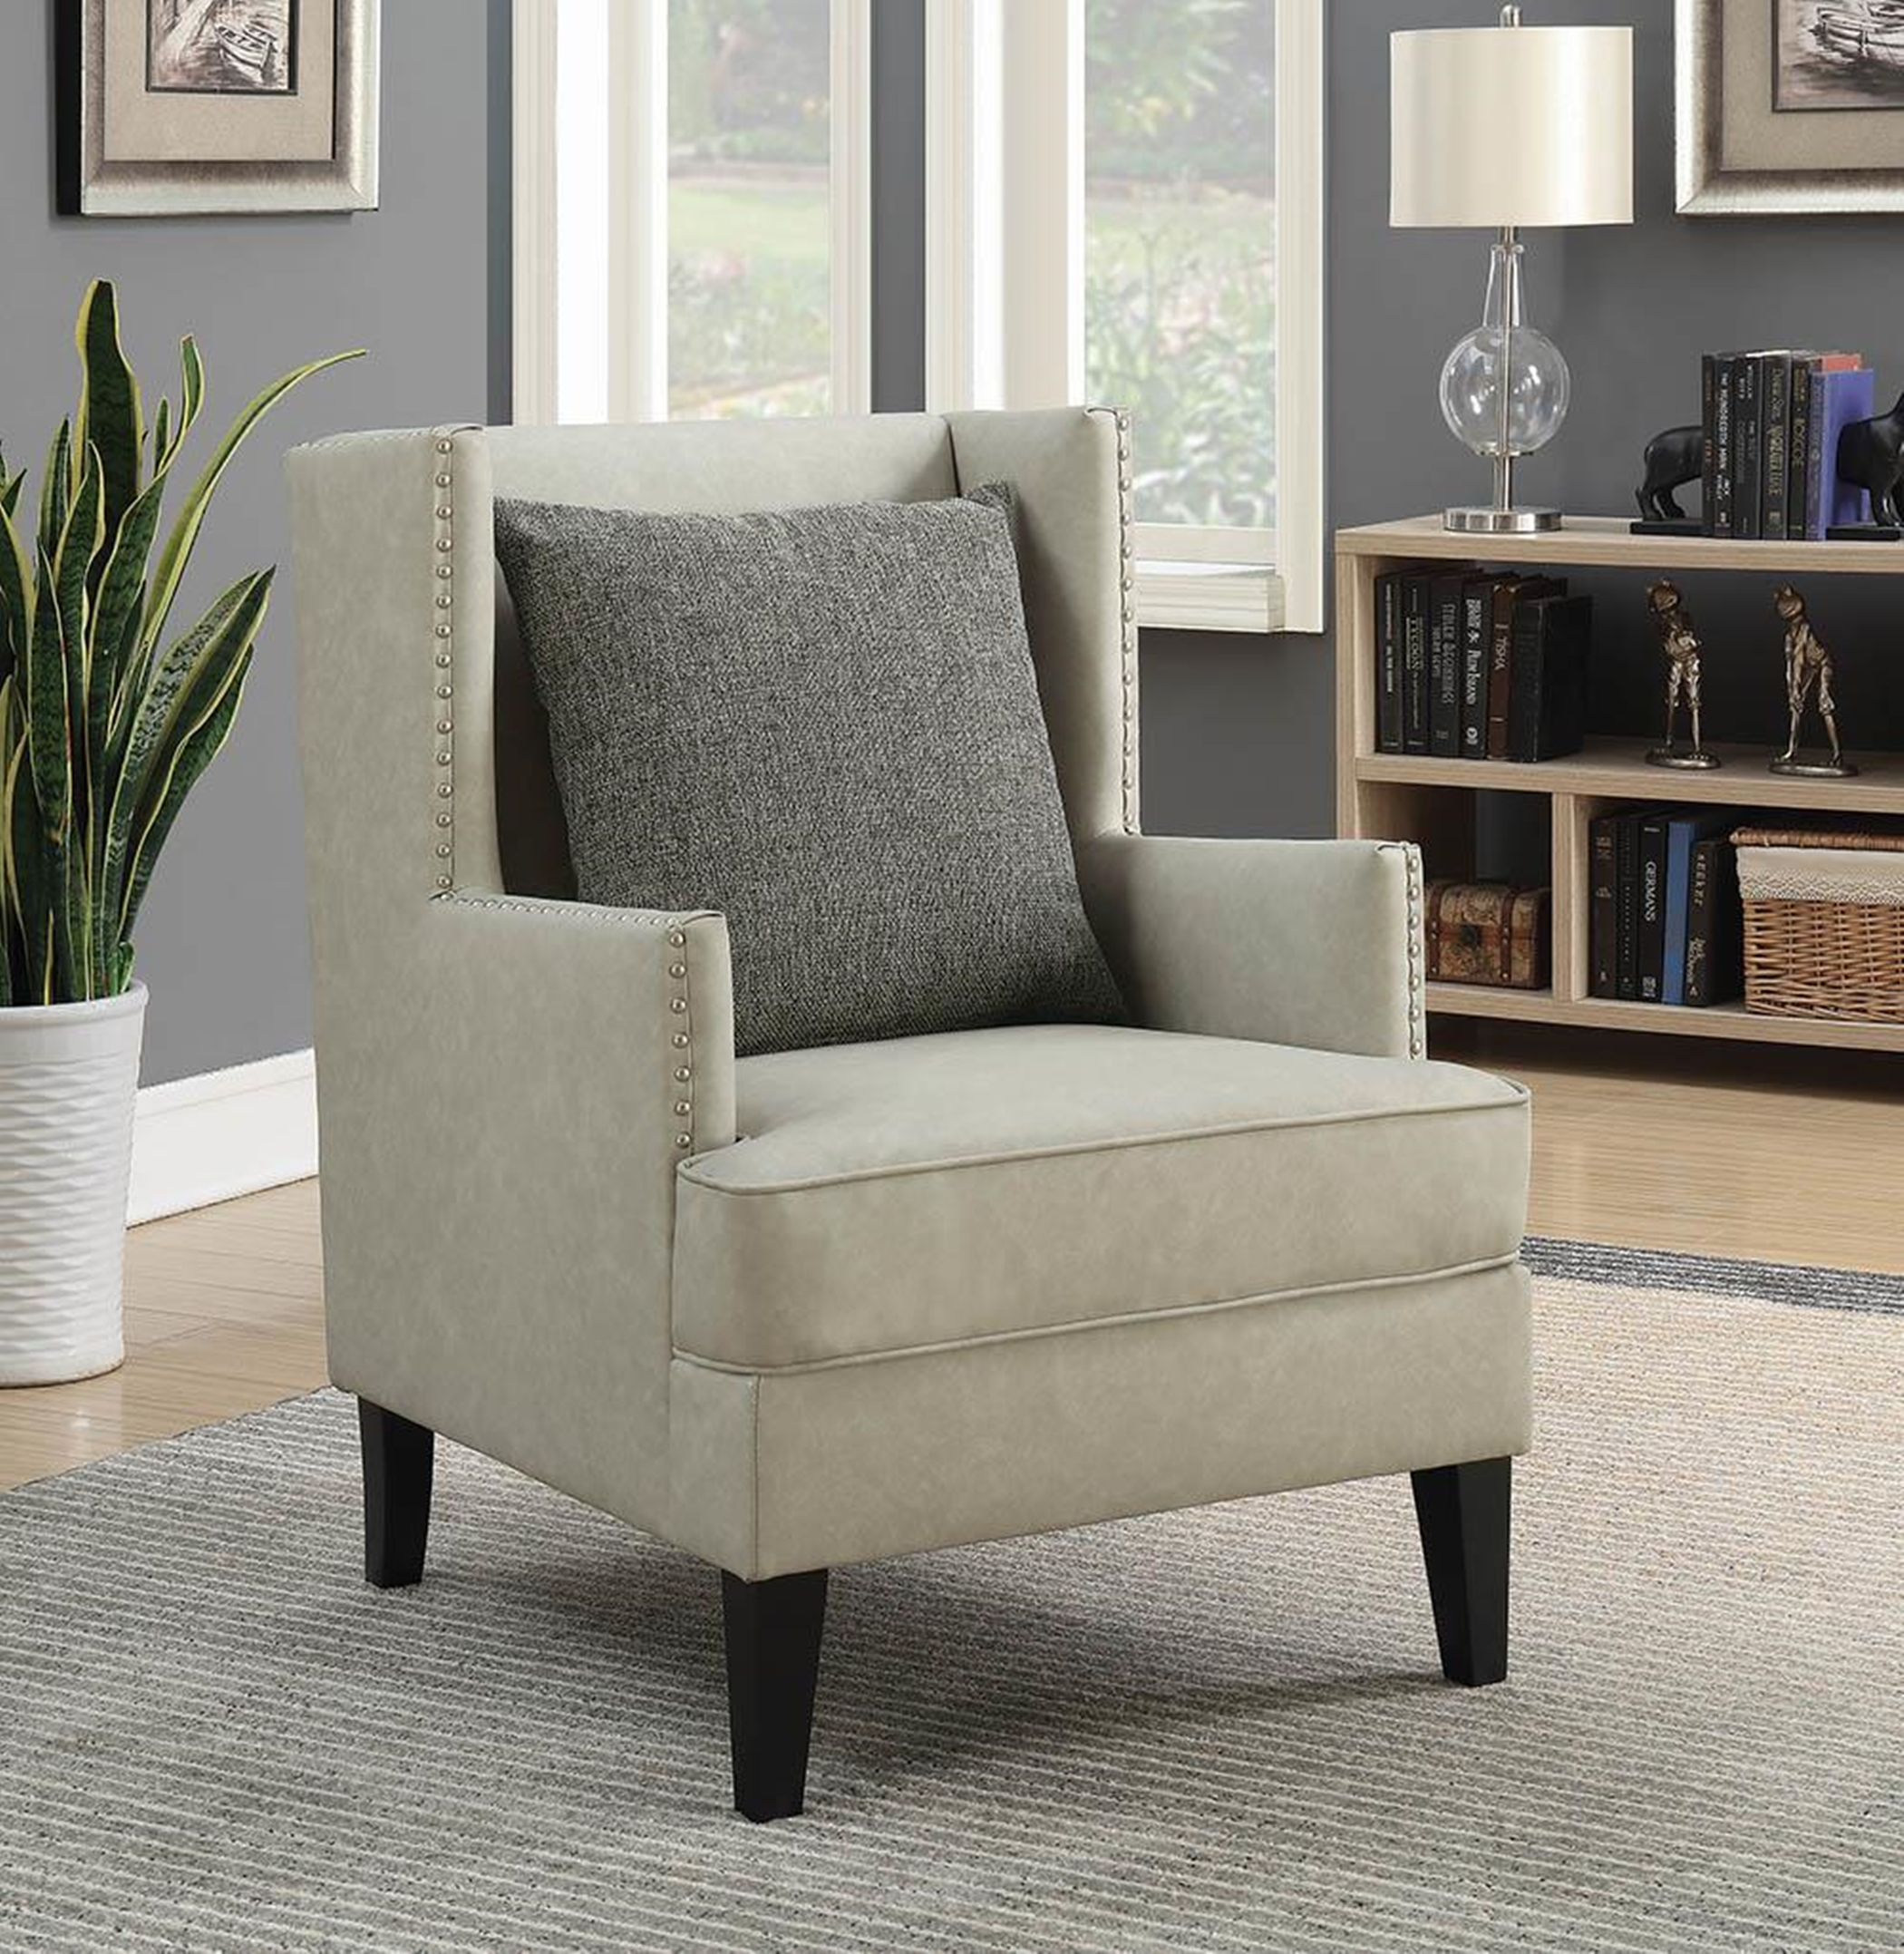 903907 - Accent Chair